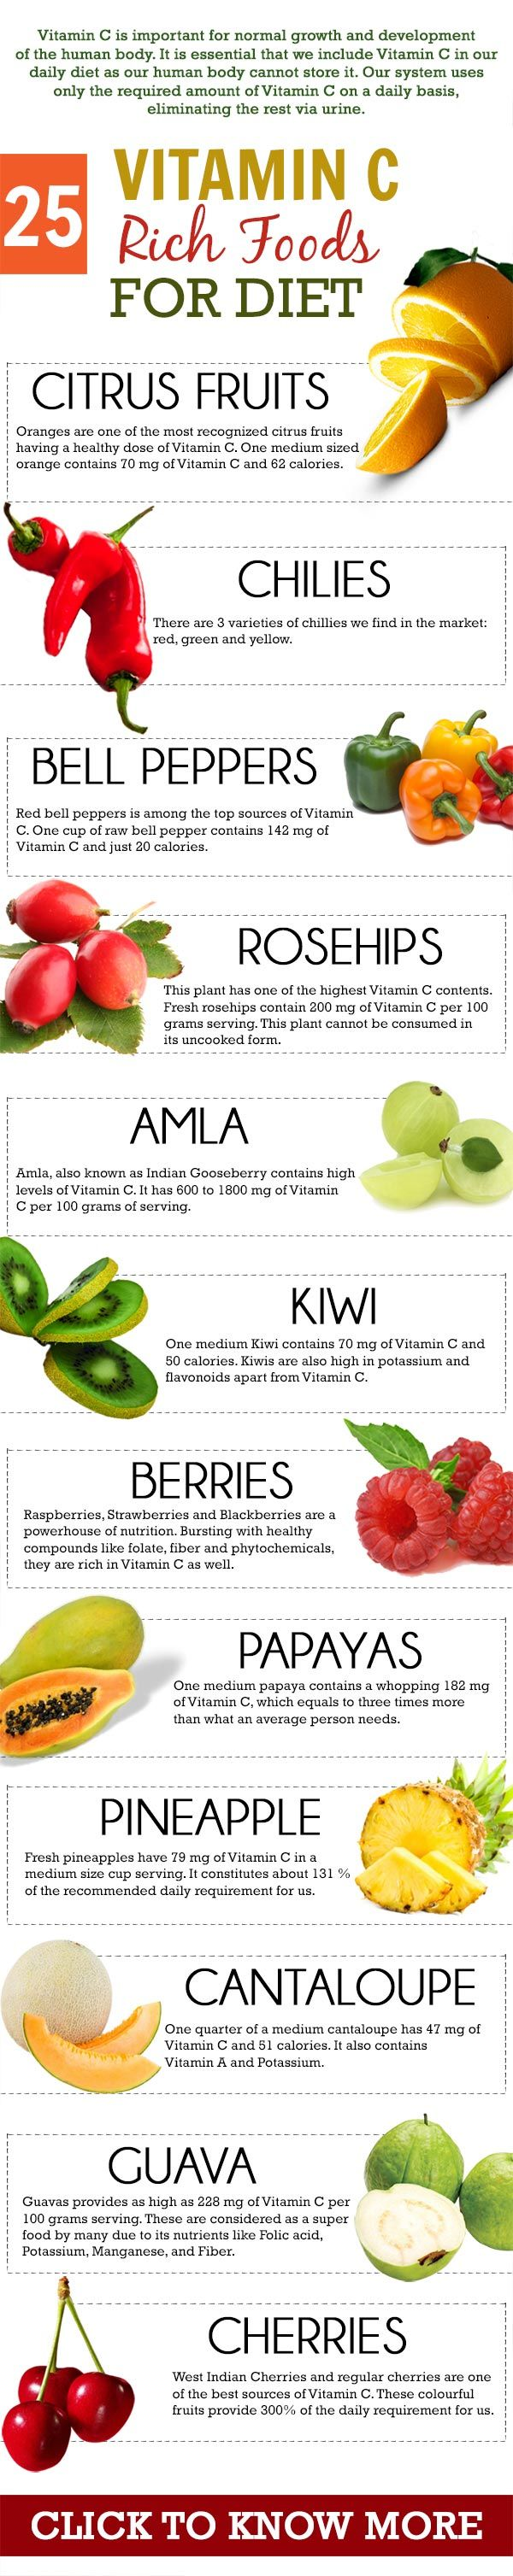 vitamin c content of food essay You can usually get all your vitamins from the foods you eat your body can also make vitamins d and k for example, if you don't get enough vitamin c, you could become anemic some vitamins may help prevent medical problems vitamin a prevents night blindness.